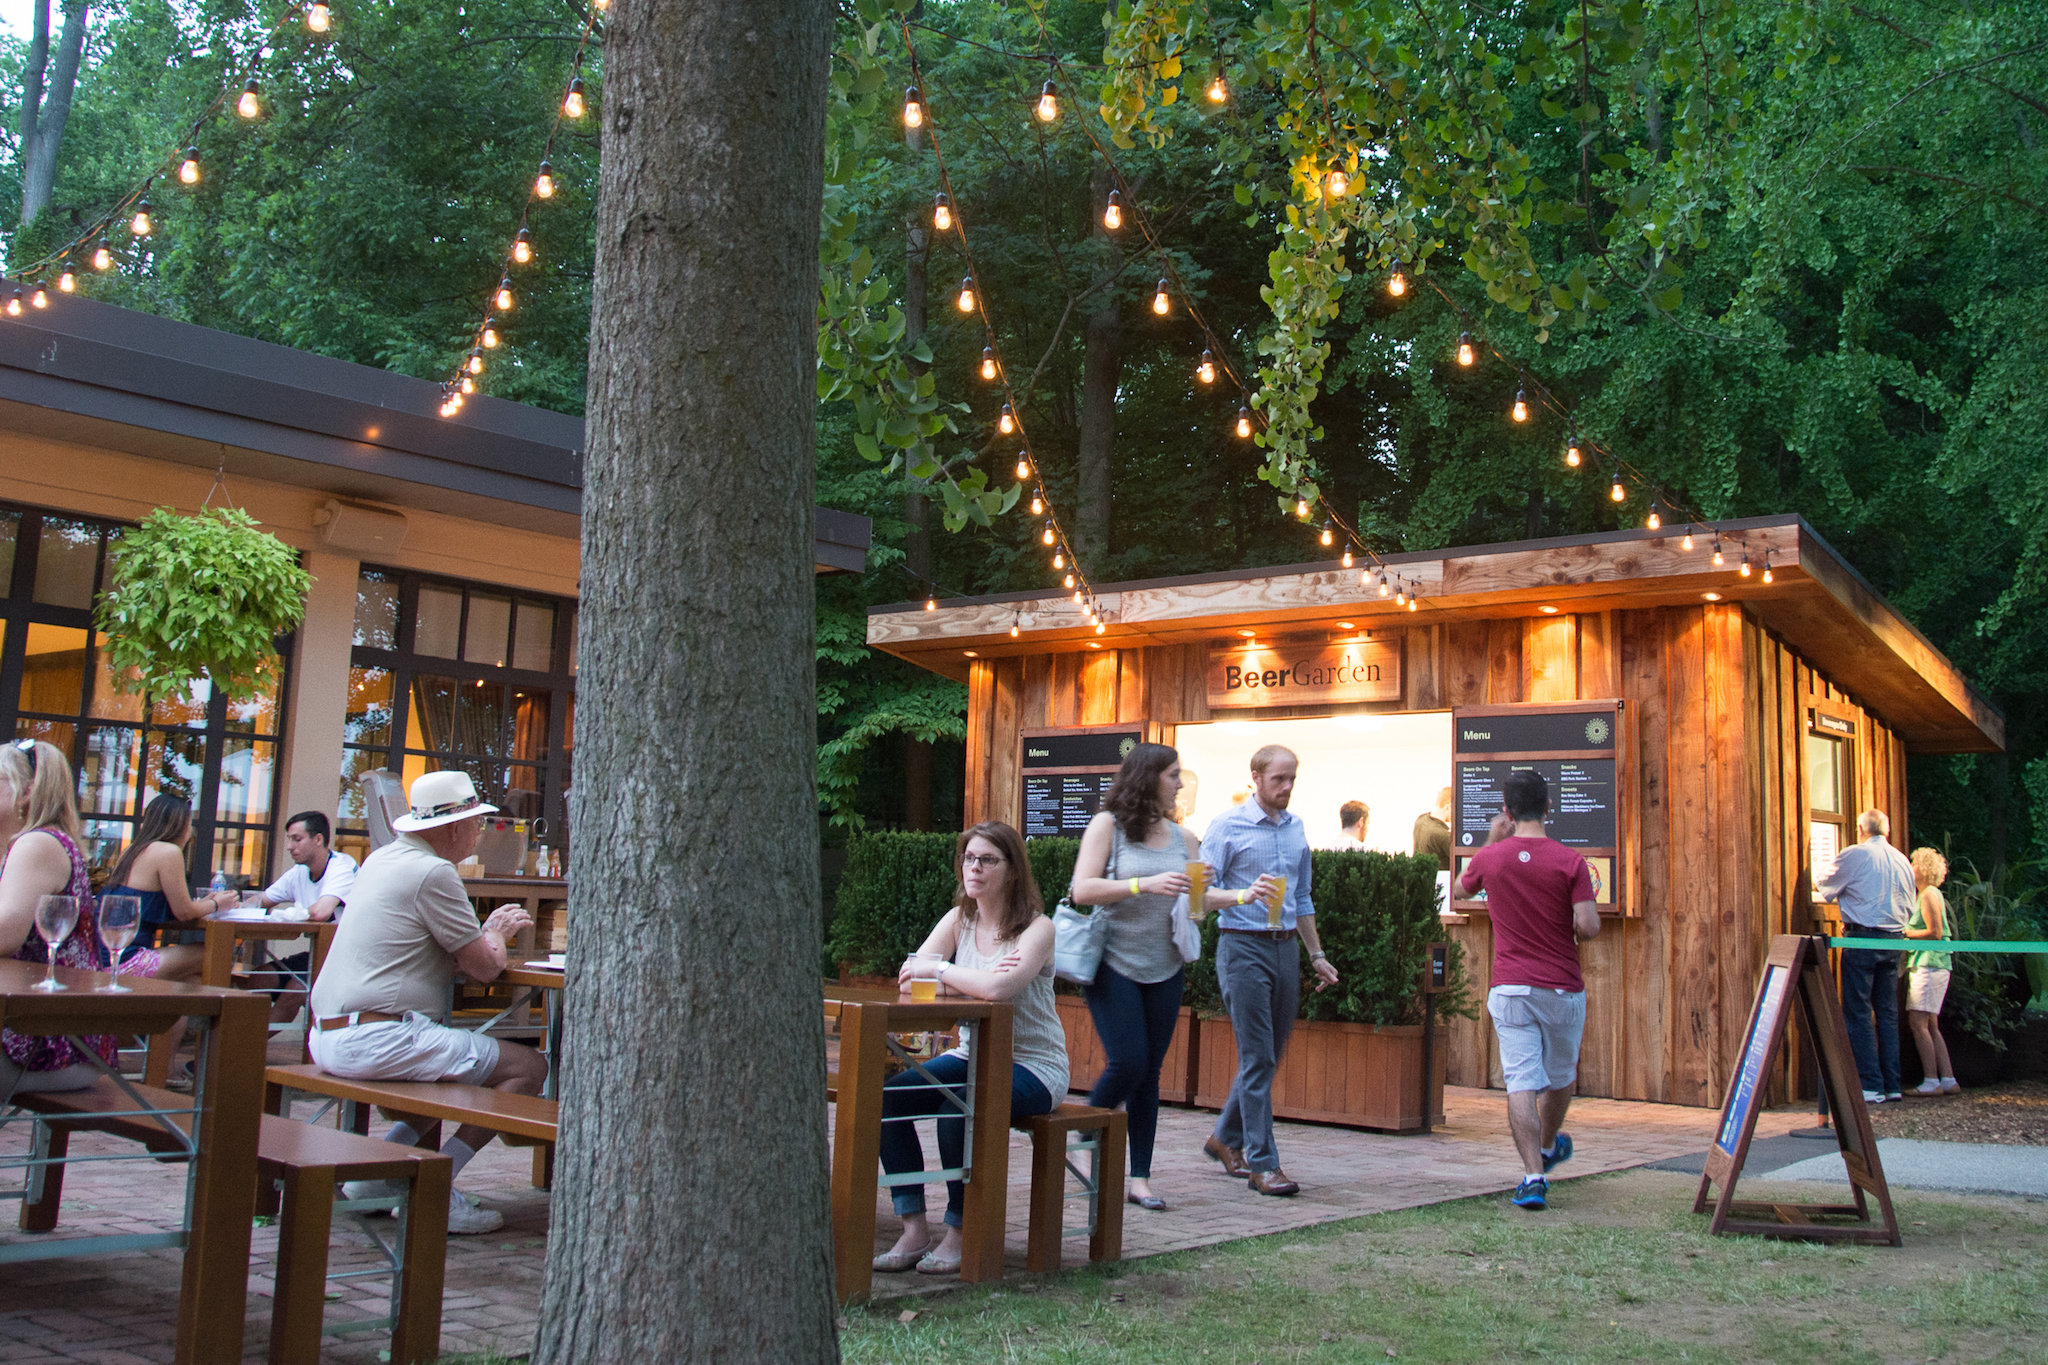 During the summer, you can visit a beer garden on the Longwood Gardens grounds.